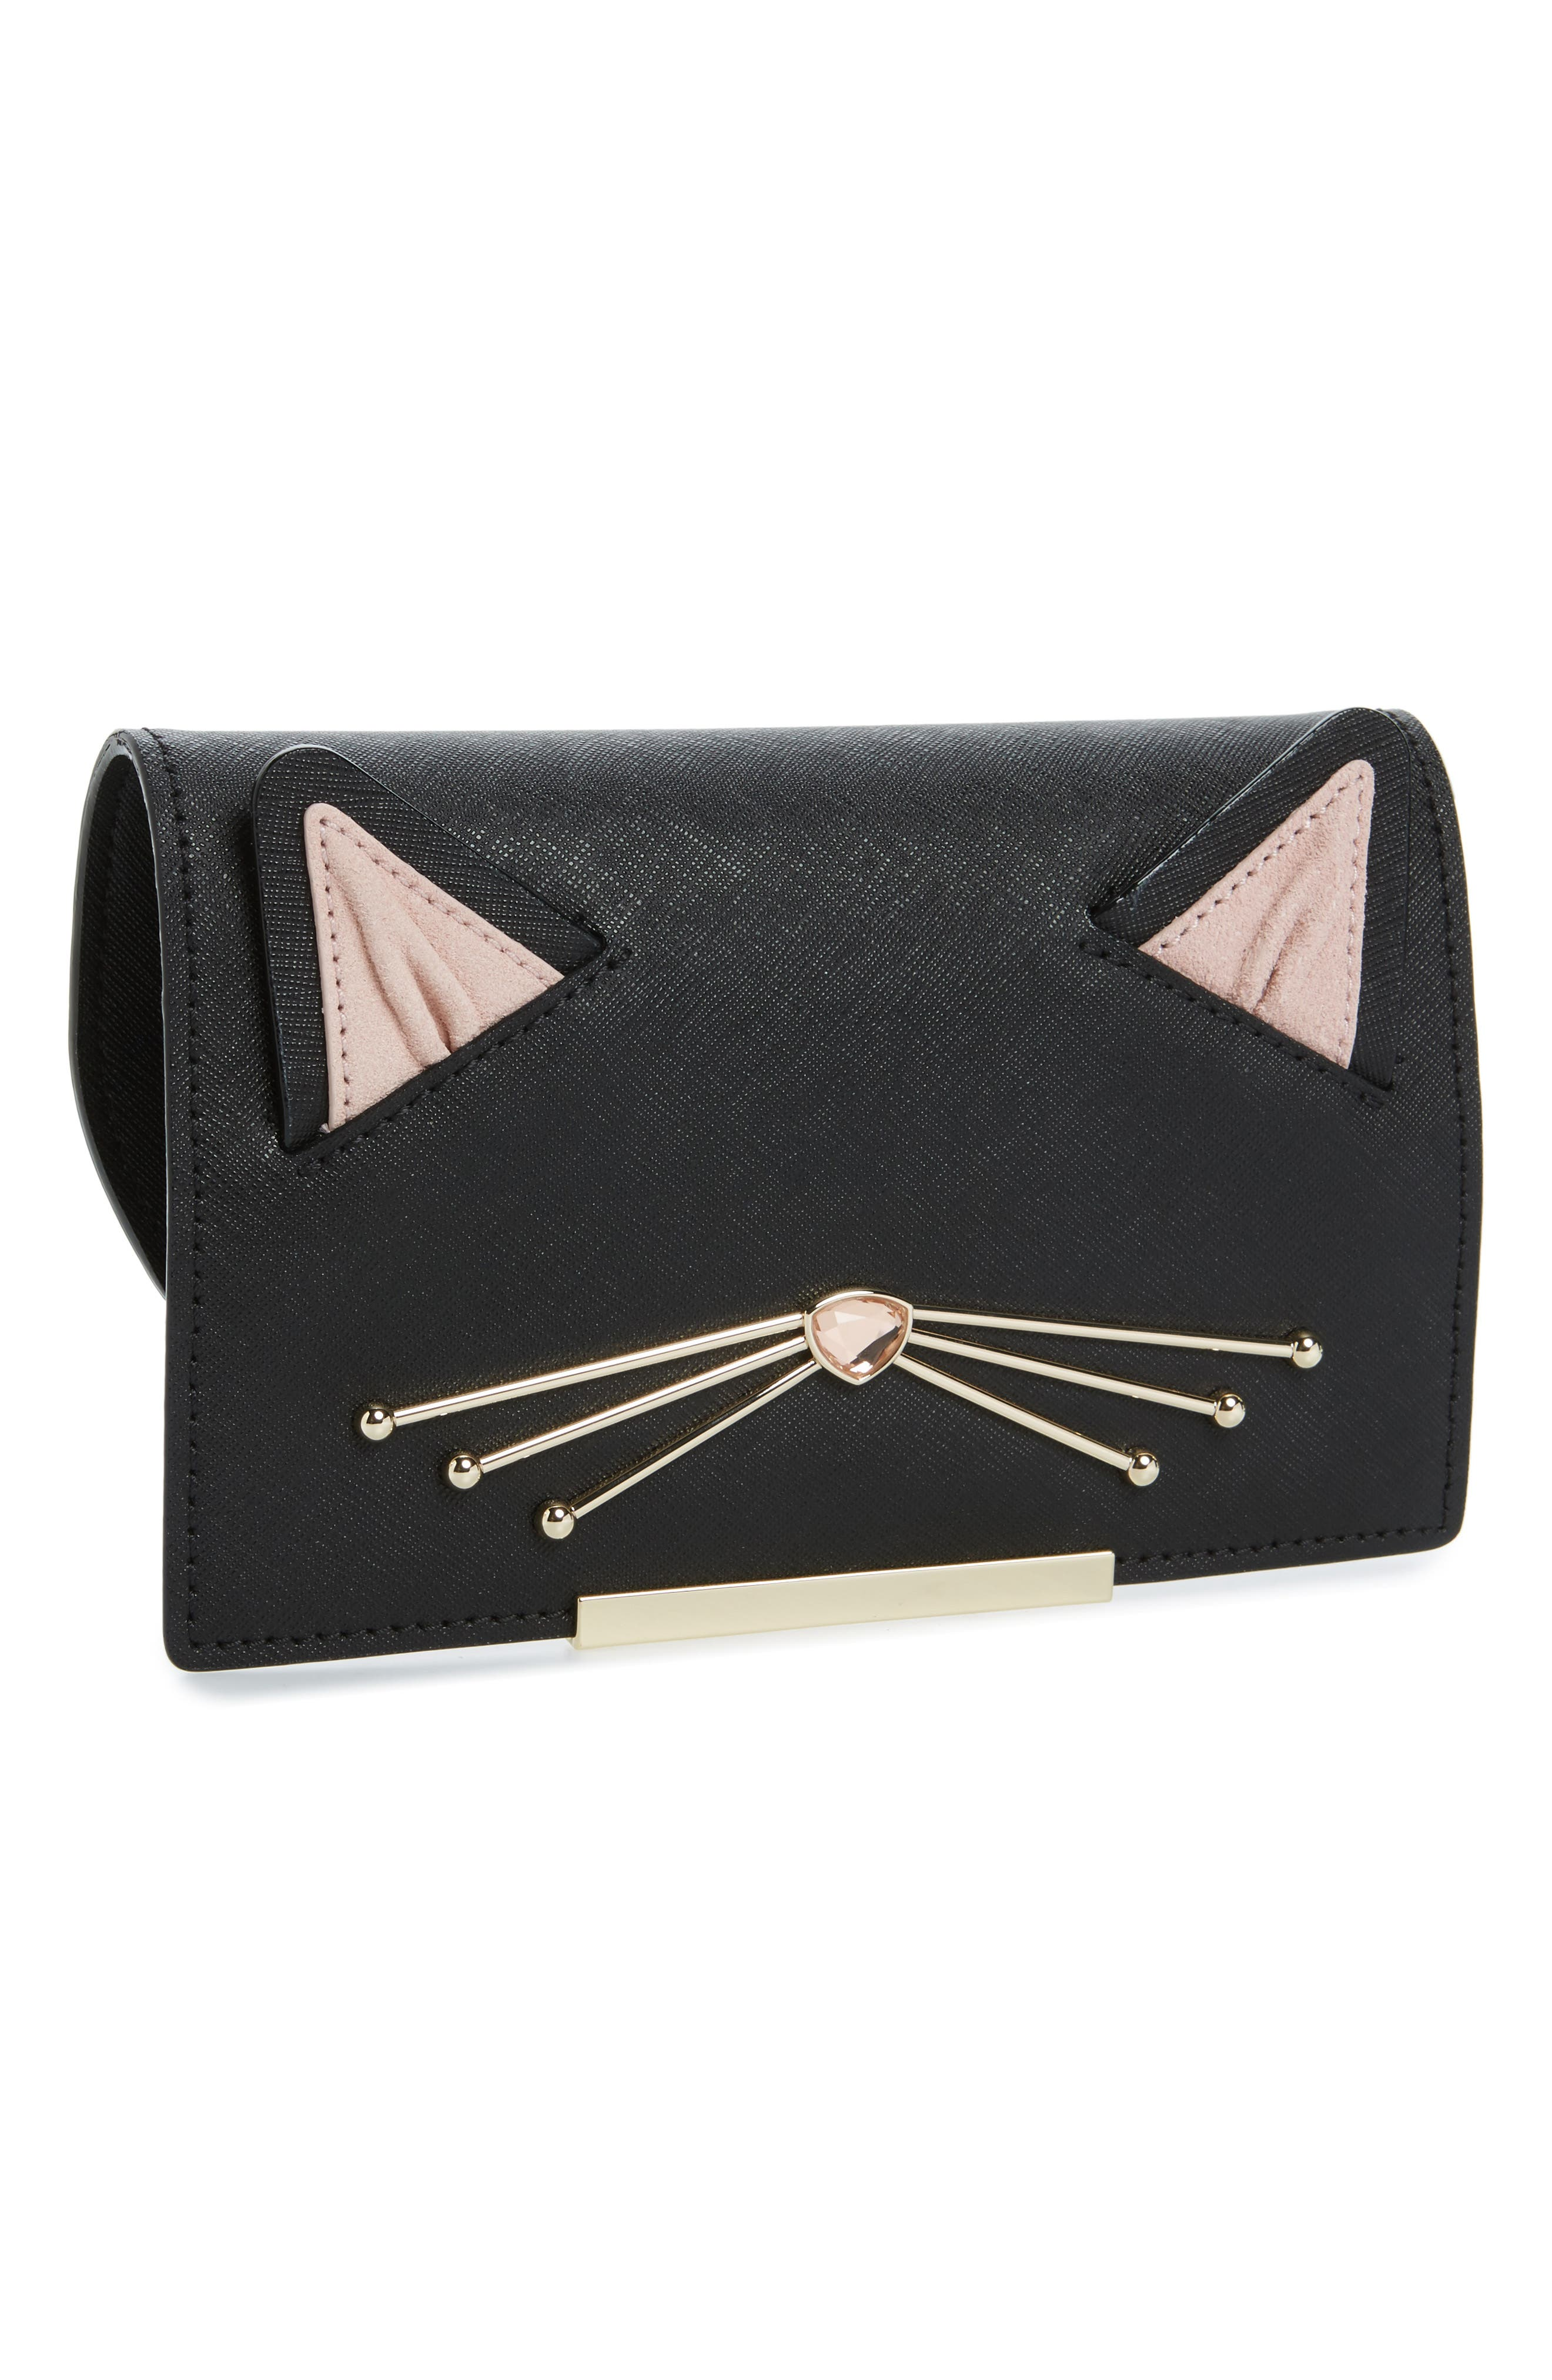 kate spade new york make it mine leather cat snap-on accent flap